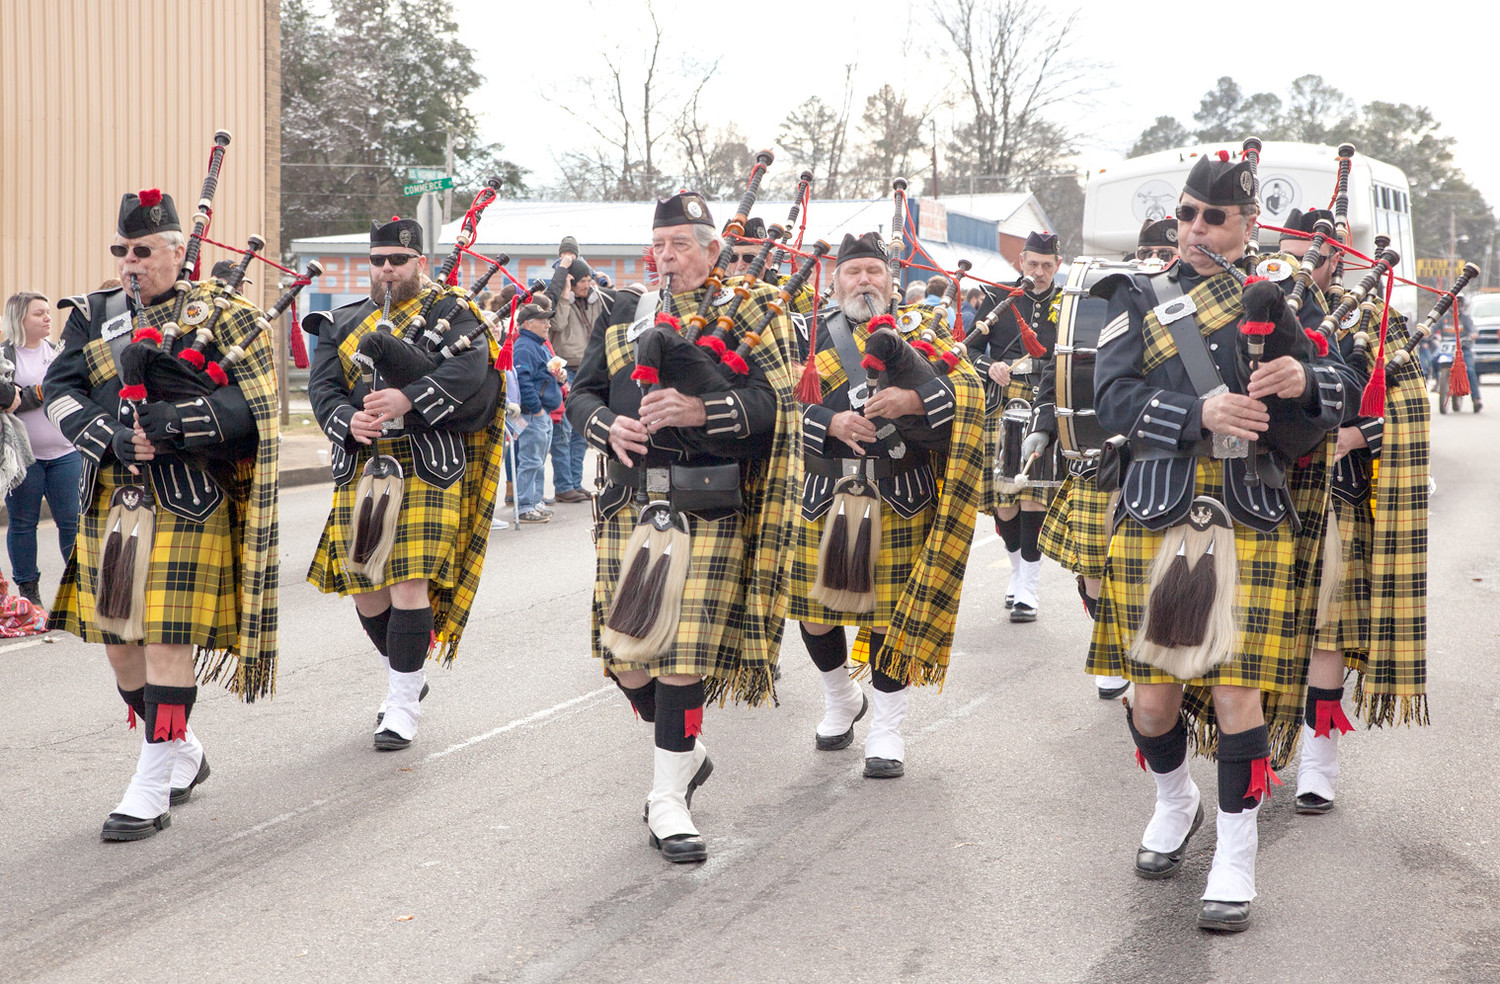 THE ALHAMBRA HIGHLANDERS Pipe and Drum group marched on the parade route during the Polk County Parade on Saturday.